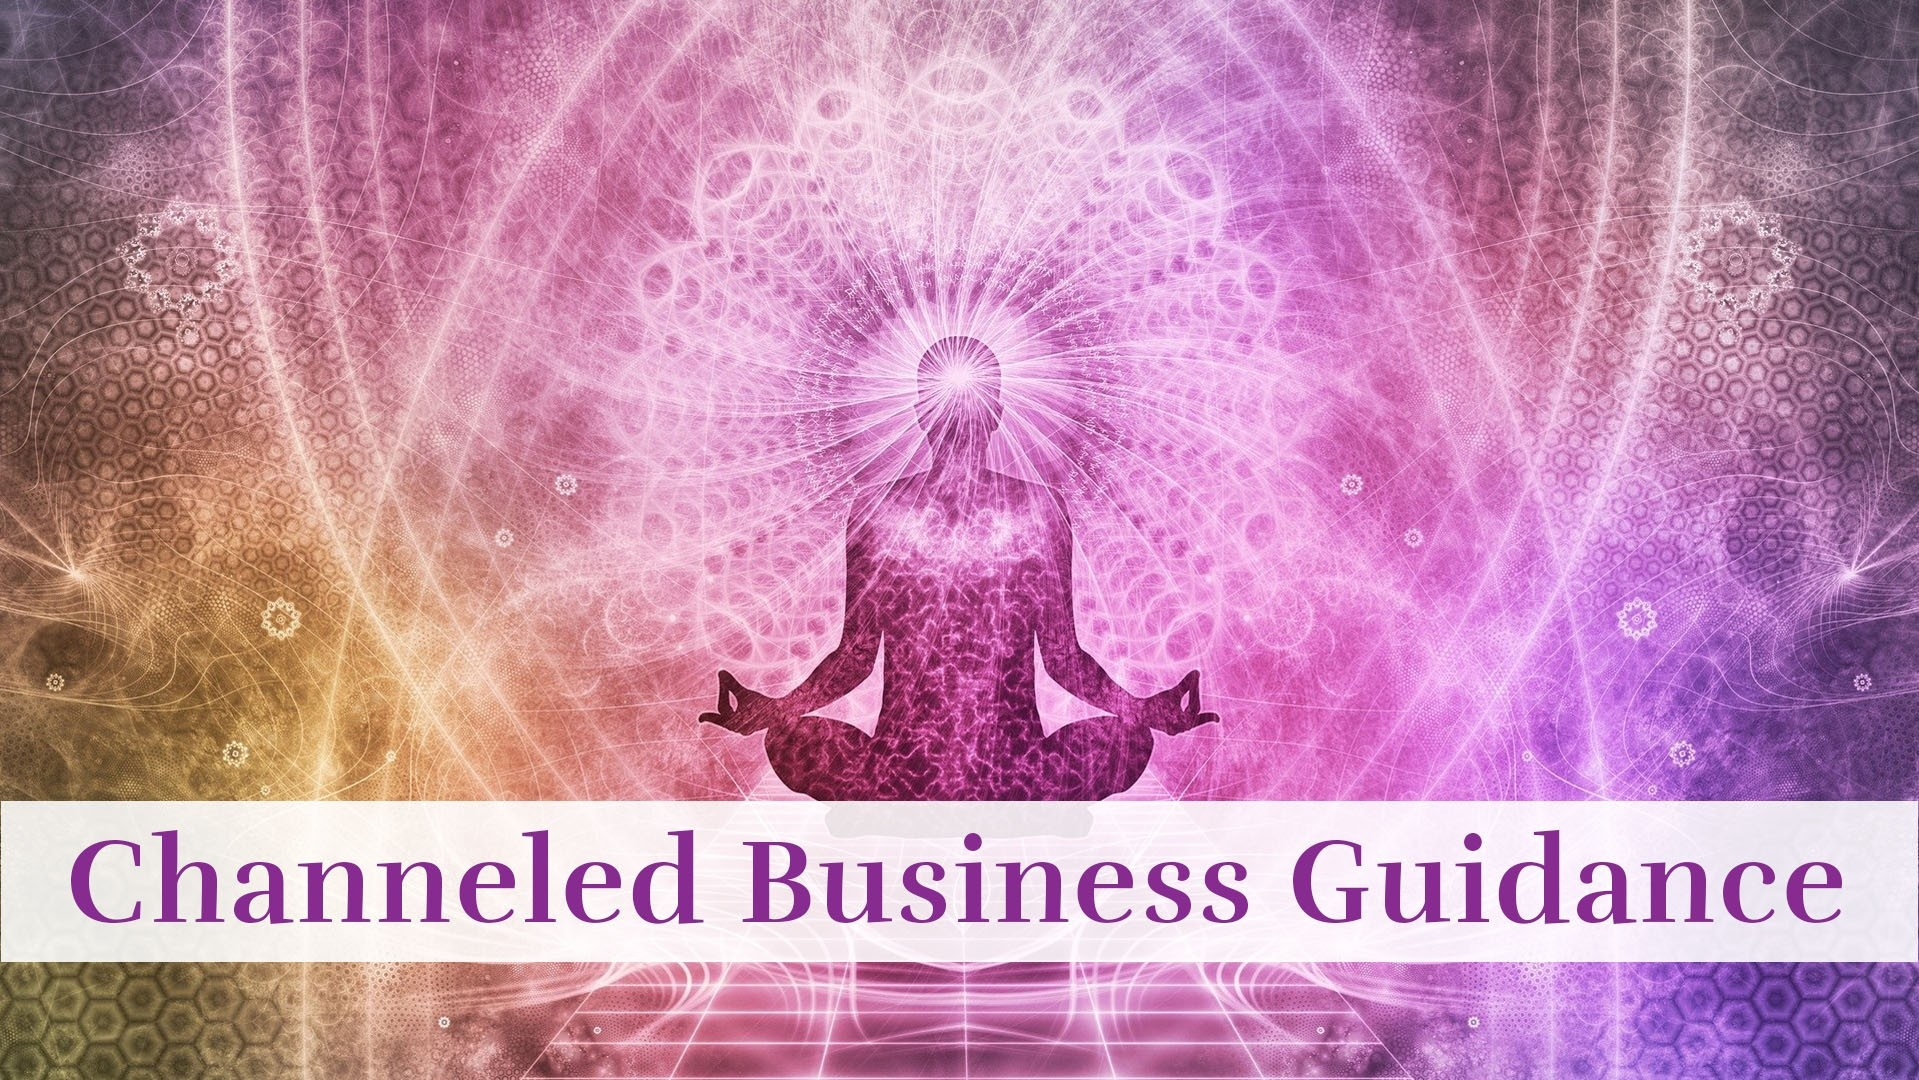 Channeled Business Guidance with The Council Of Twelve for higher wisdom insight.